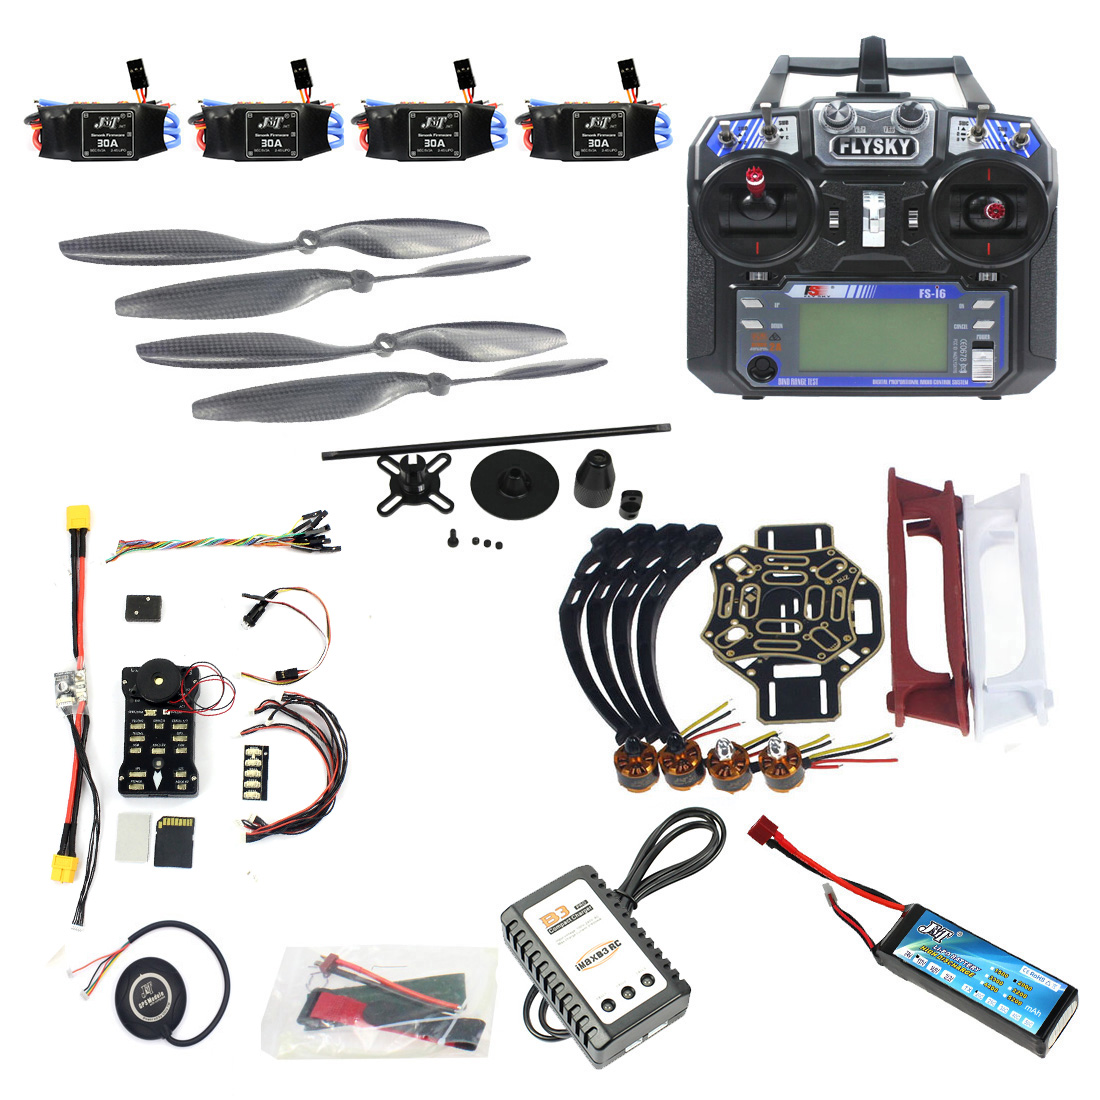 DIY FPV RC Drone Quadcopter 4 axle Aircraft Kit 450 Frame PXI PX4 Flight Control 920KV Motor GPS FS i6 Transmitter-in RC Helicopters from Toys & Hobbies    1